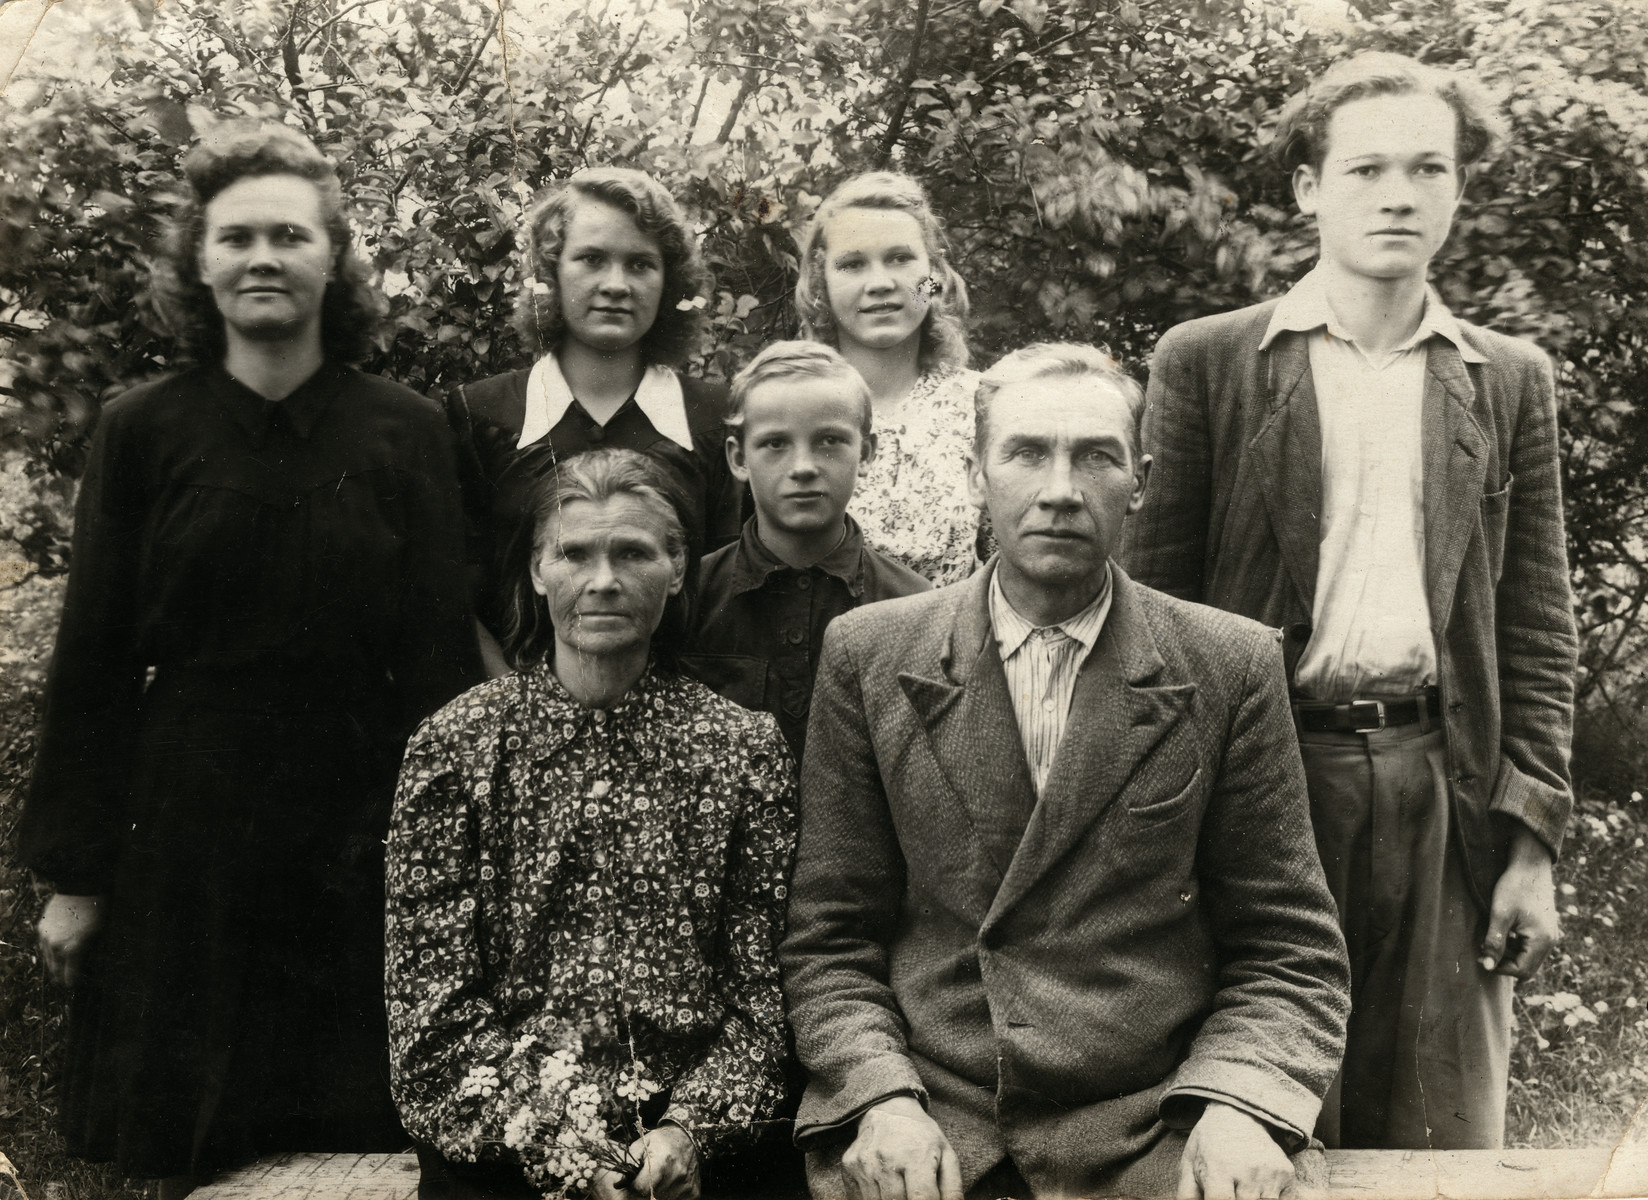 The Karpovitch Family during the 1950s. Five of the seven children are pictured.  Zofia and Ignacy Karpovitch hid Rachel and Wolf Godrov and two of Rachel's cousins, Chaya and Katriel, for over two years until libteration in Lithuanina.   During the war Ignacy Karpovitch made alcohol and sold it.